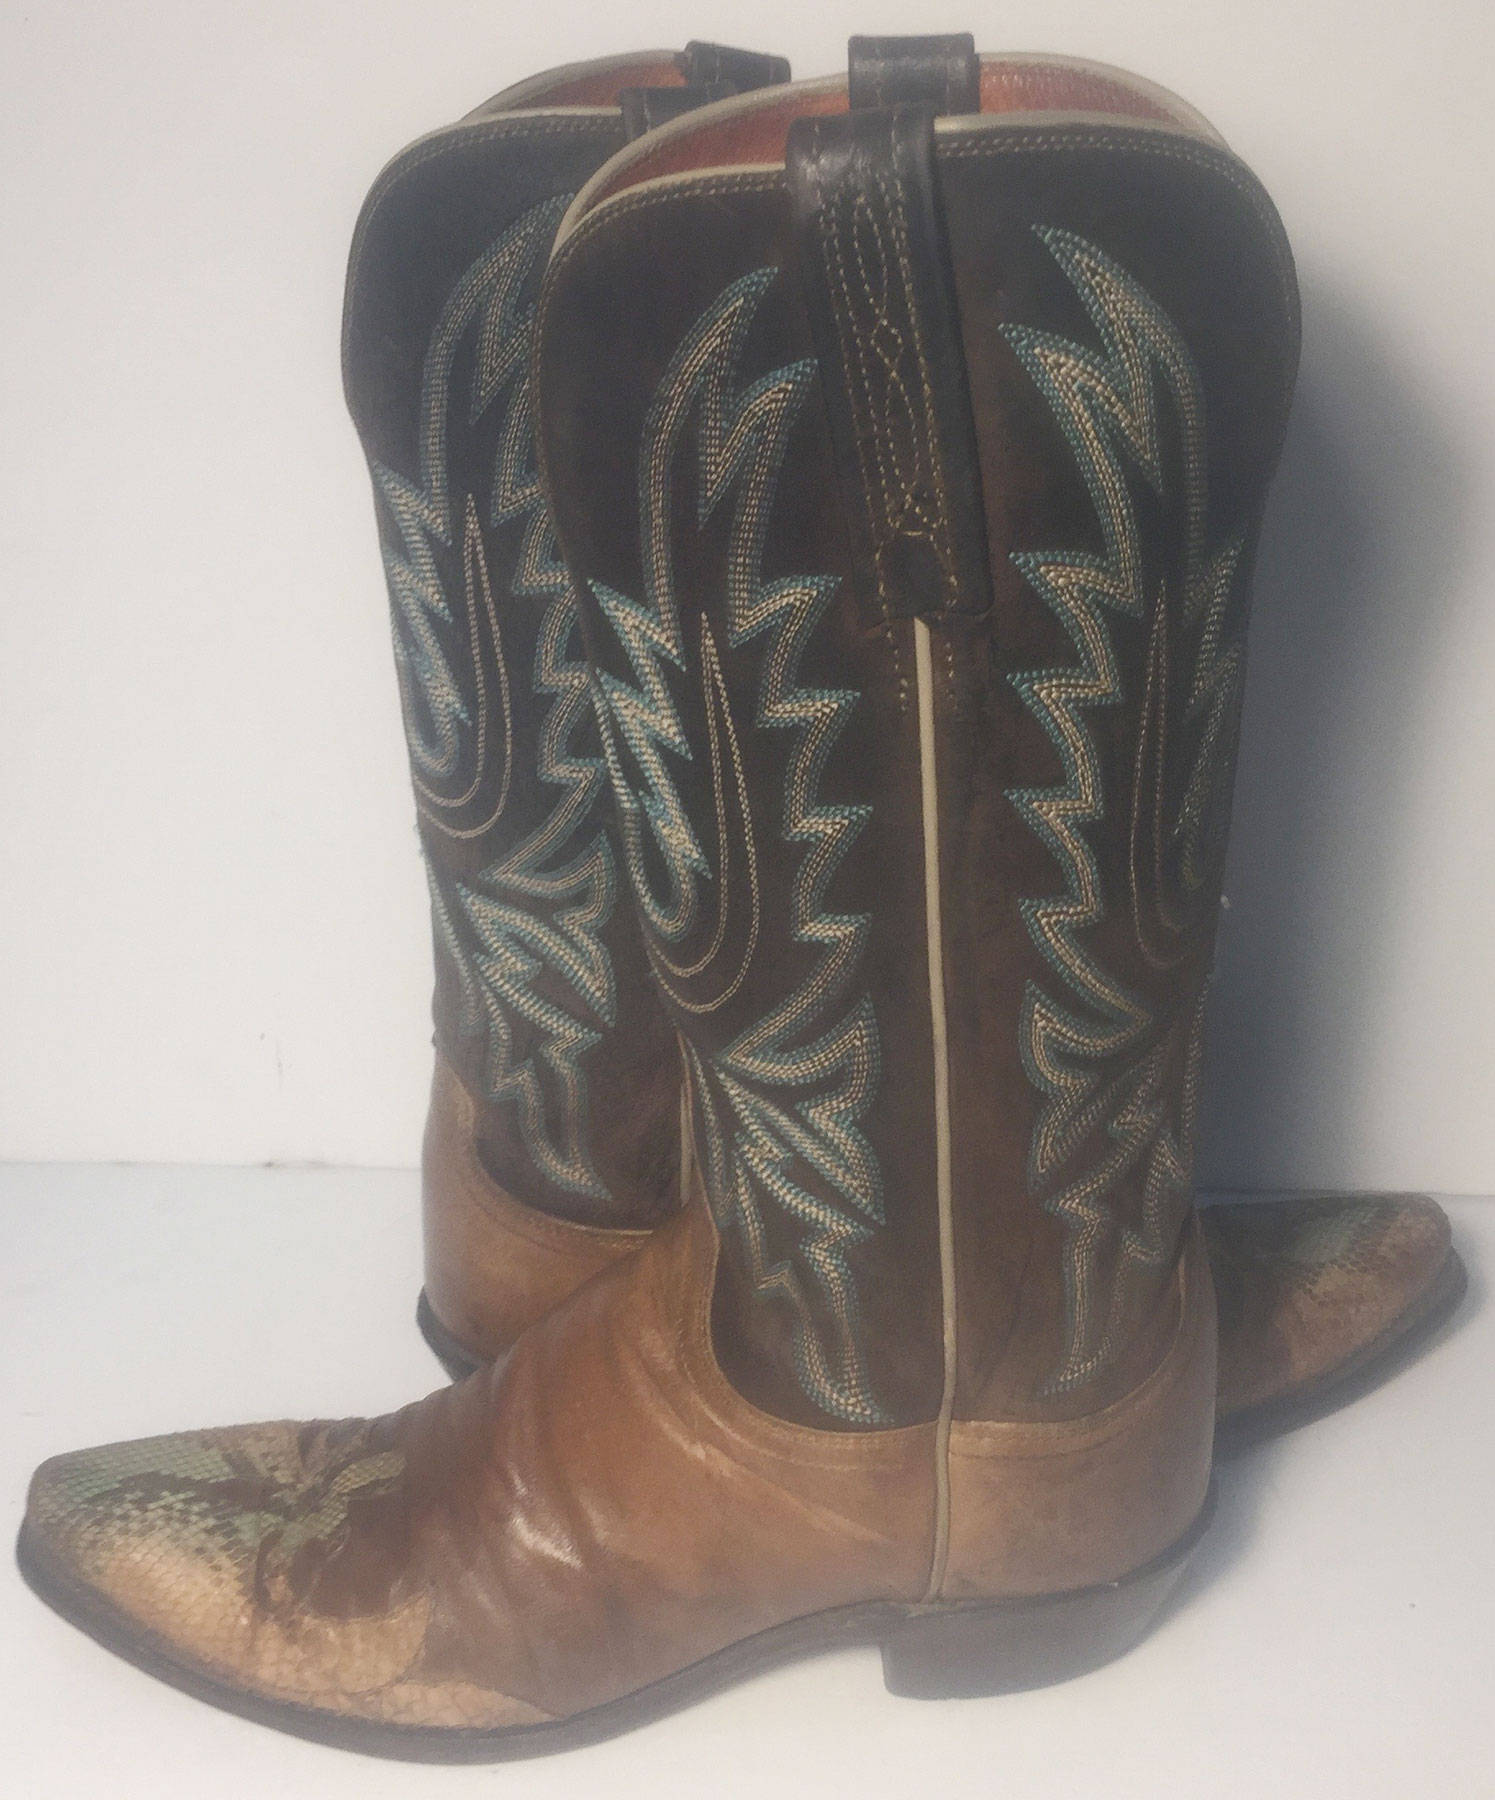 6d45c1344af Lucchese 1883 Brown Leather Green Lizard Skin Western Cowgirl Boots Women's  Size 7.5